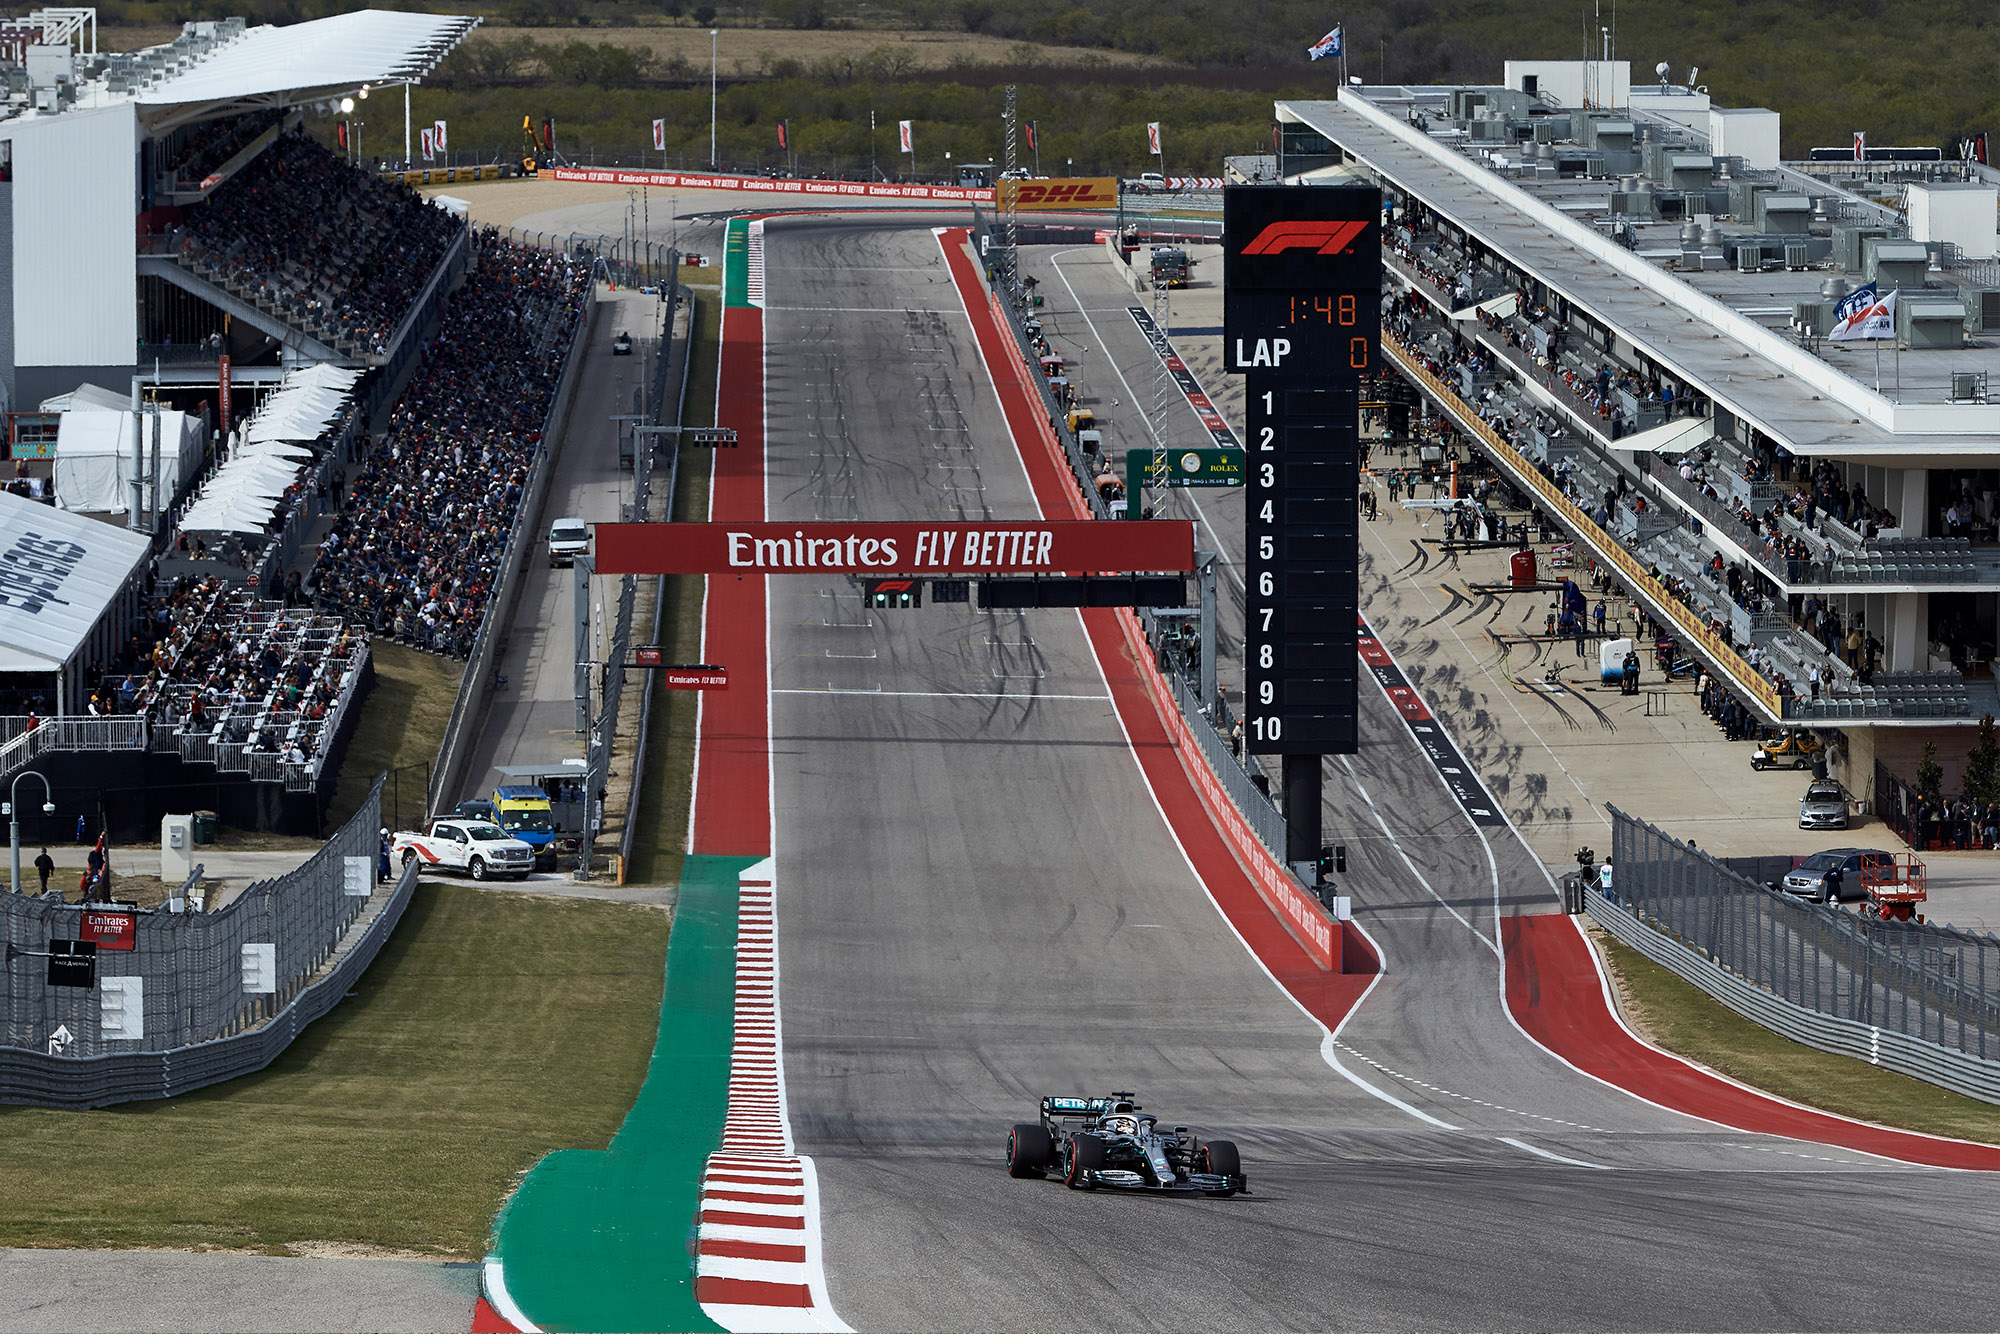 Lewis Hamilton drives up the hill to Turn One during qualifying for the 2019 US Grand Prix